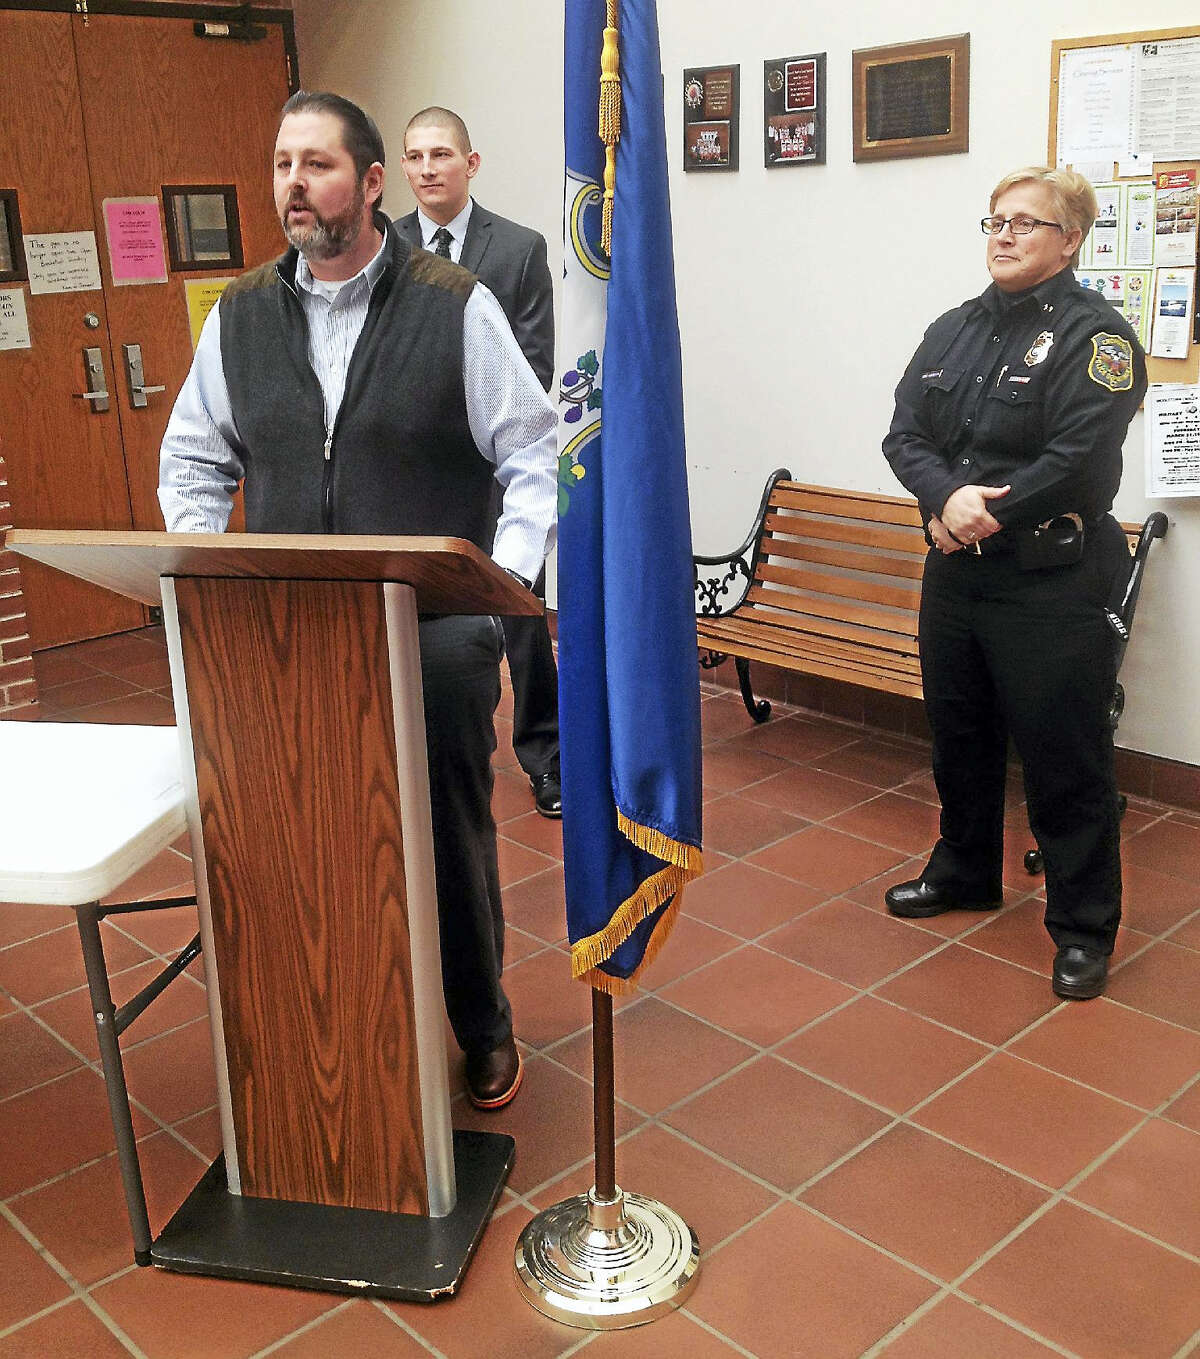 Zachary Augenstein was sworn in Monday to Cromwell's Police Department, bringing the force to full staff at 27 officers.